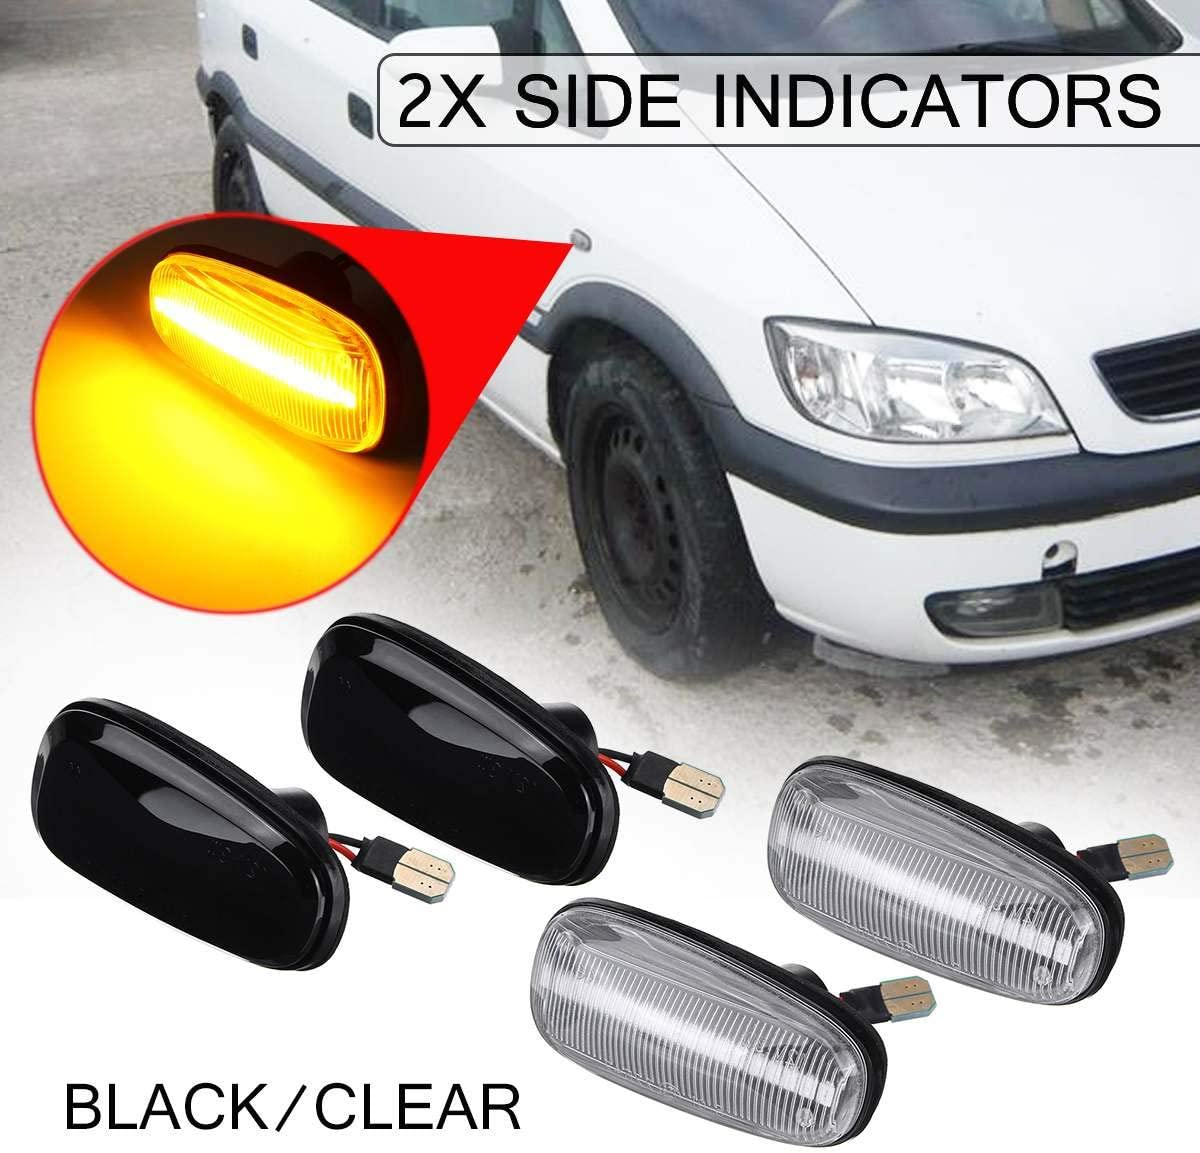 Summerwindy 2Pcs Car Side Marker Light LED Turn Signal Indicator Lamp for Zafira a 99-05 Astra G 98-09 Black